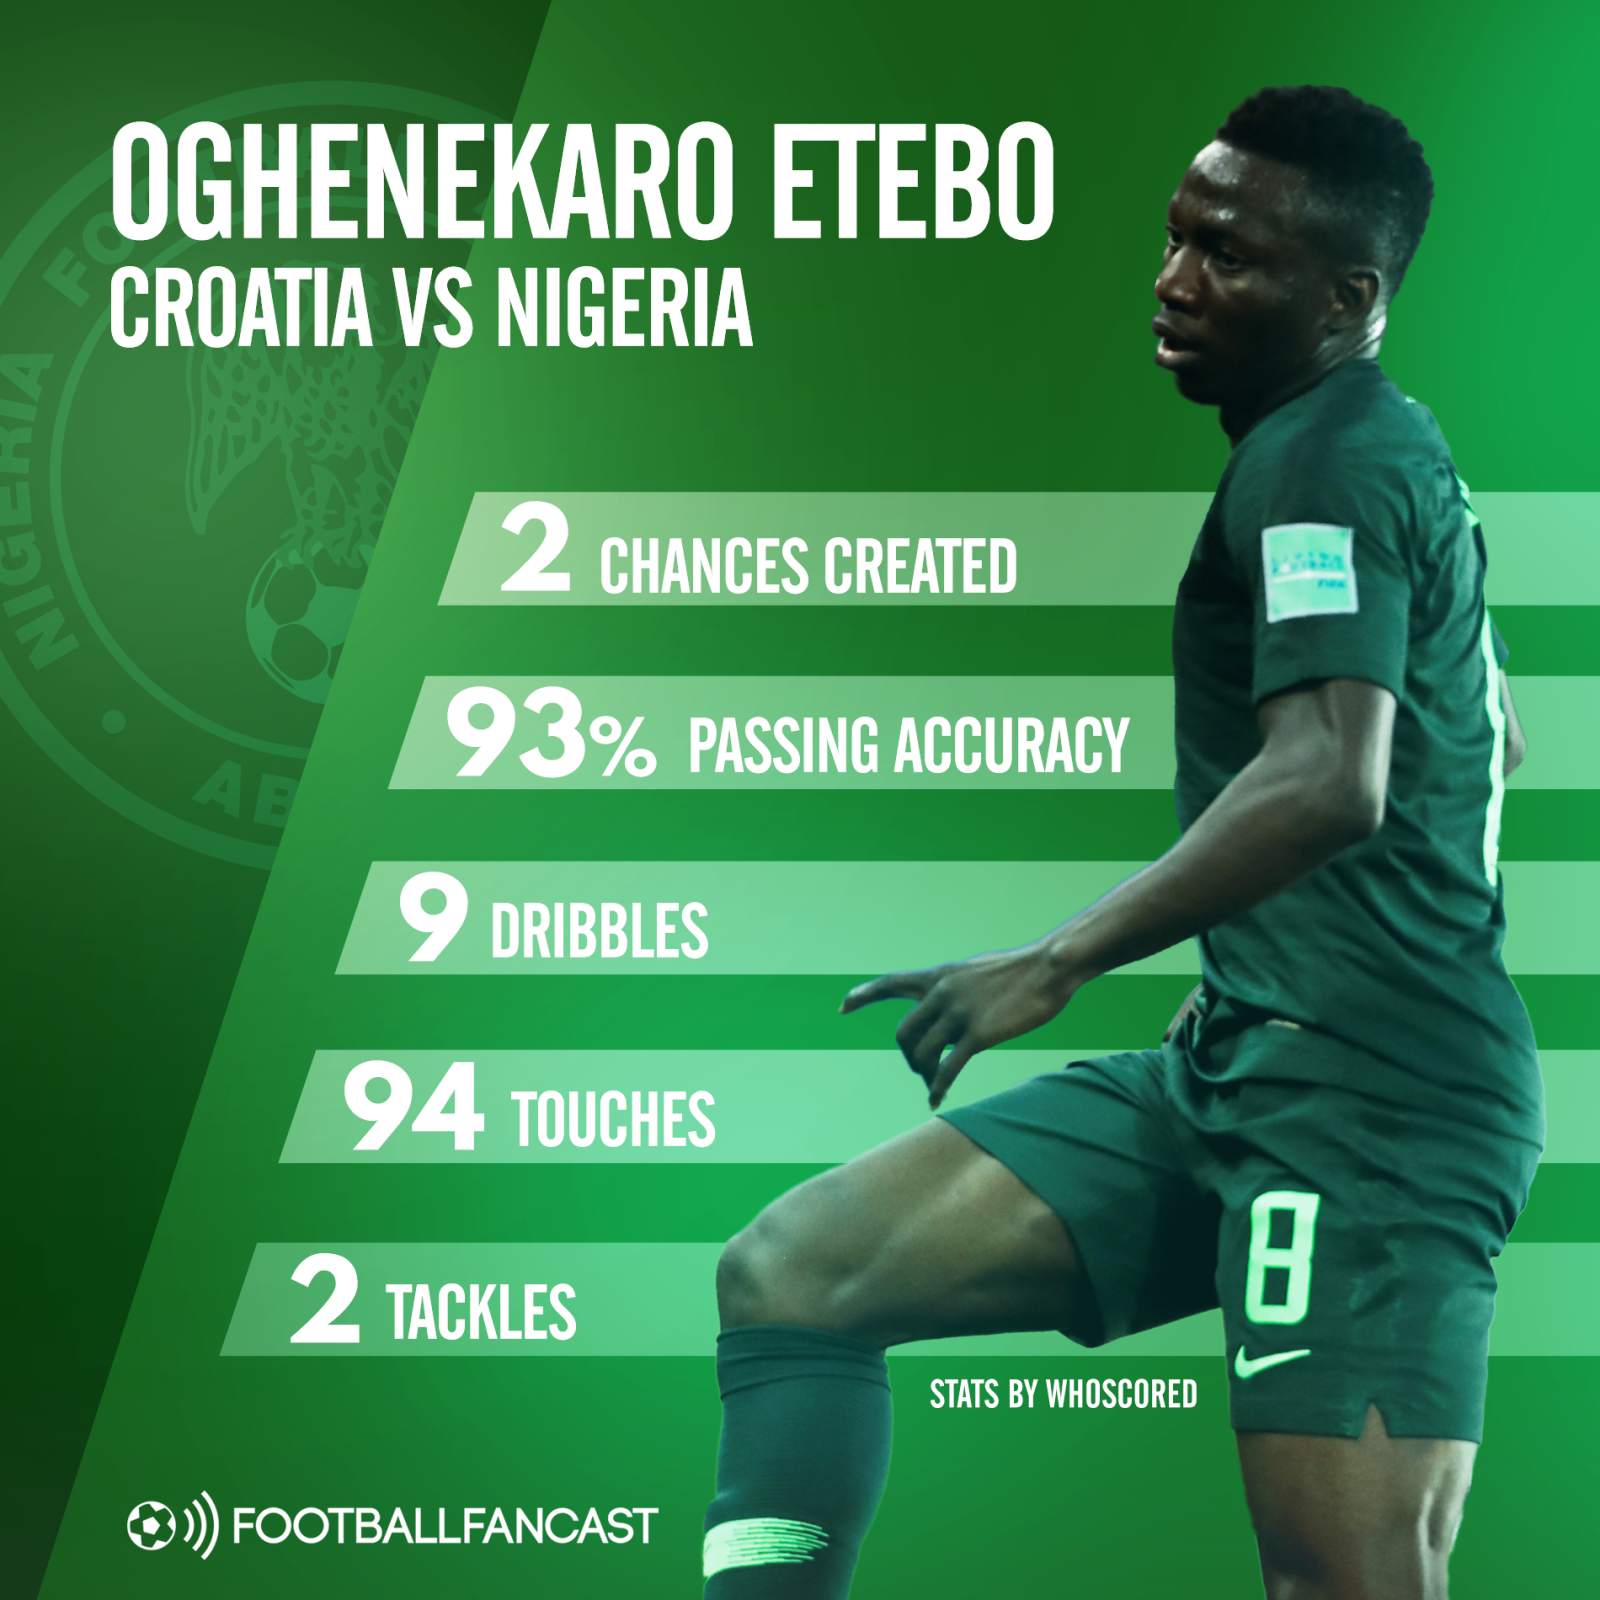 Oghenekaro Etebo's stats from Nigeria's 2-0 defeat to Croatia